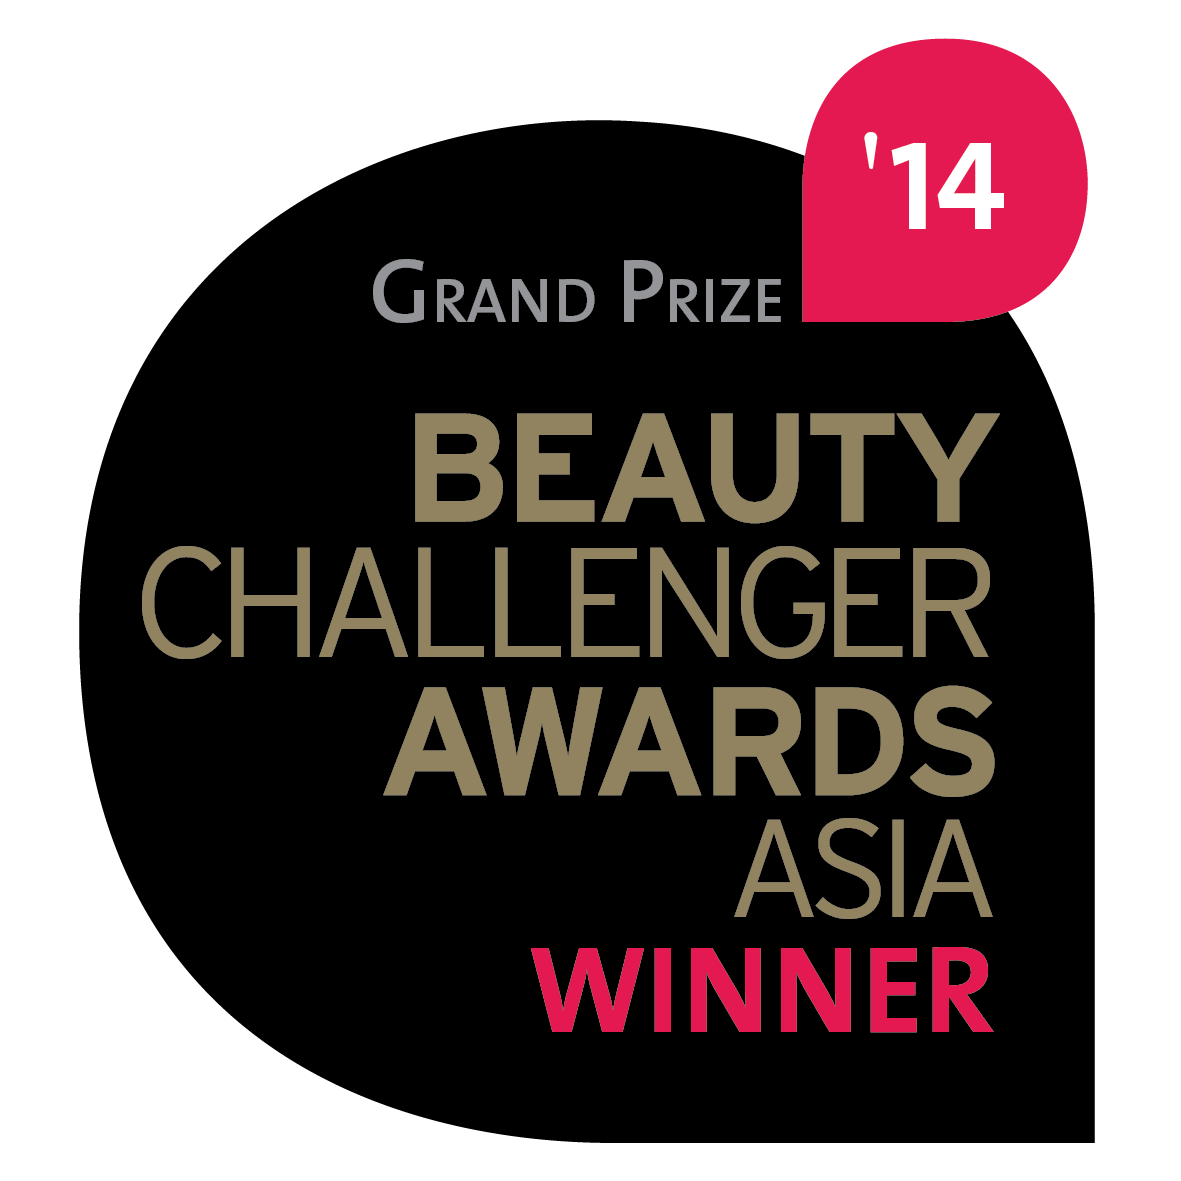 beauty challenger awards Asia